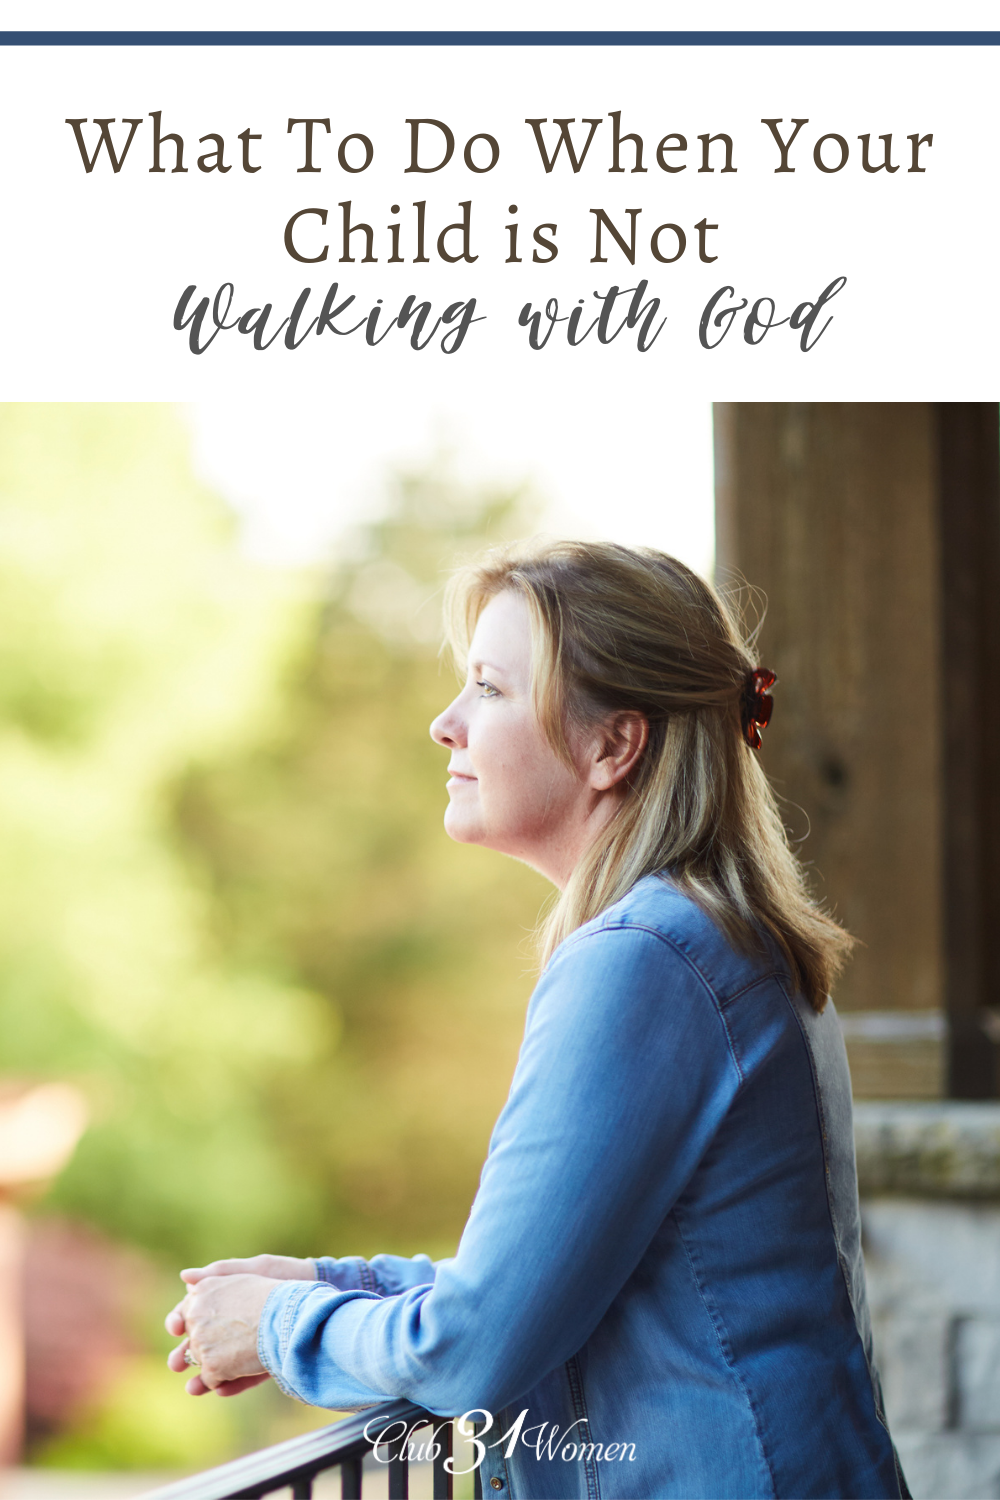 If you have a child not walking with the Lord, there are some things you'll want to remember. Things that will bring you hope... via @Club31Women